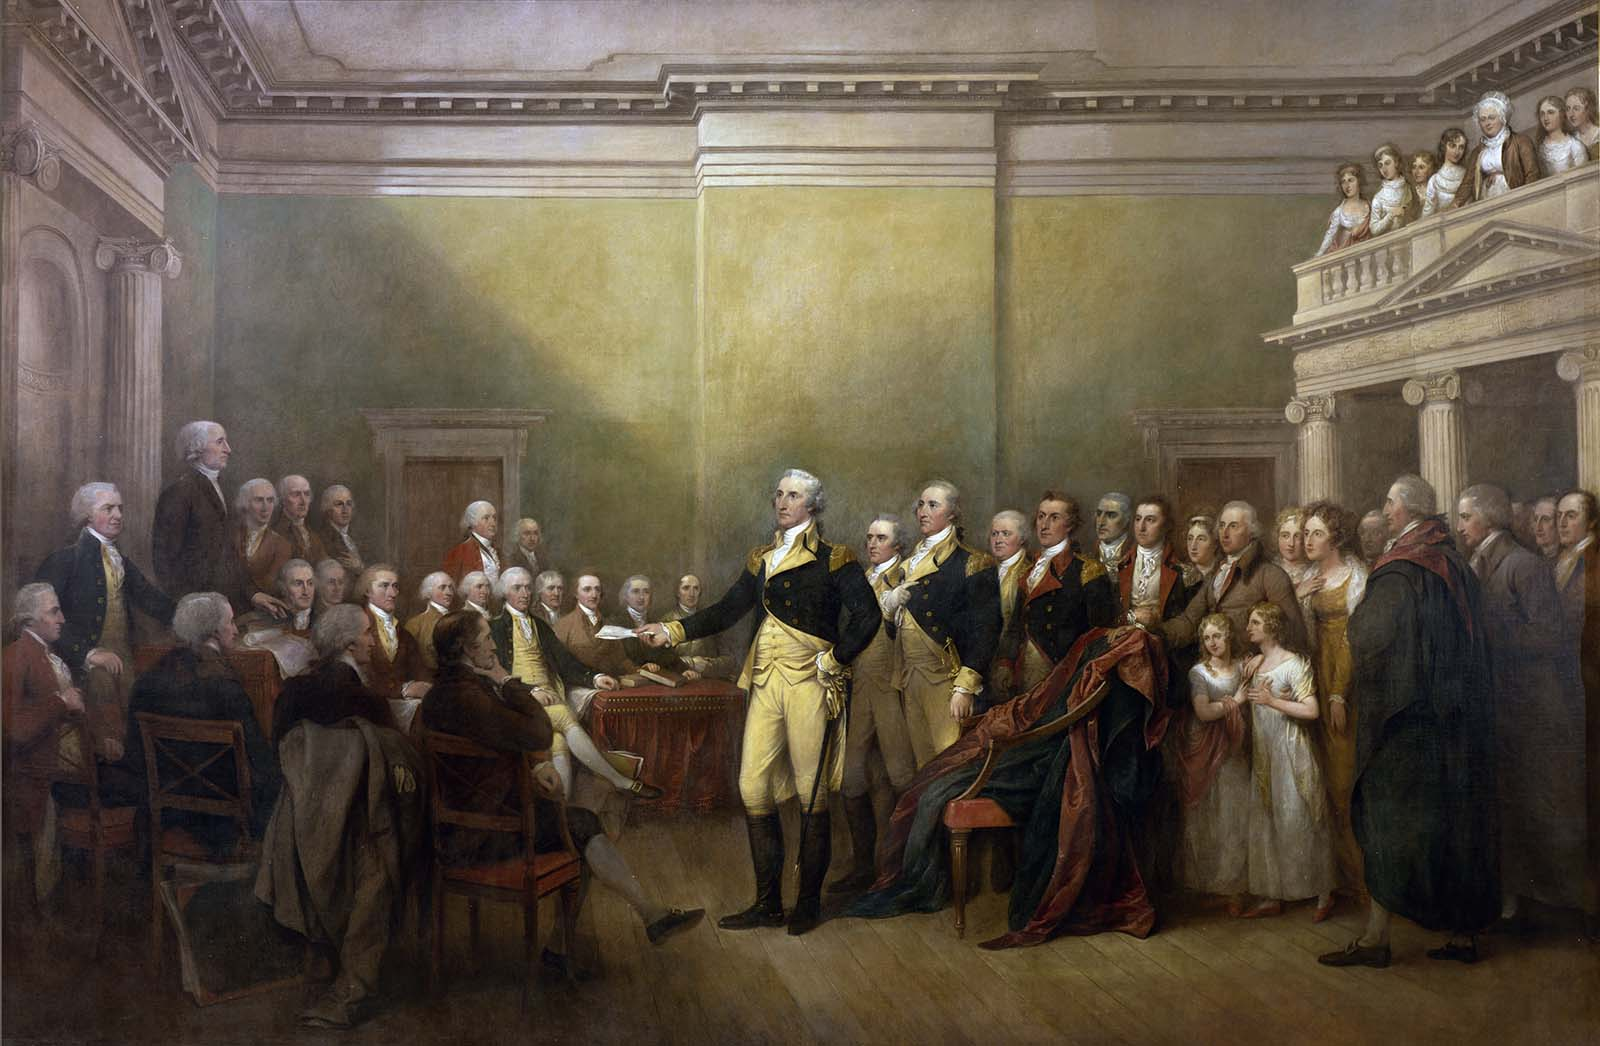 5 the american revolution the american yawp another john trumbull piece commissioned for the capitol in 1817 this painting depicts what would publicscrutiny